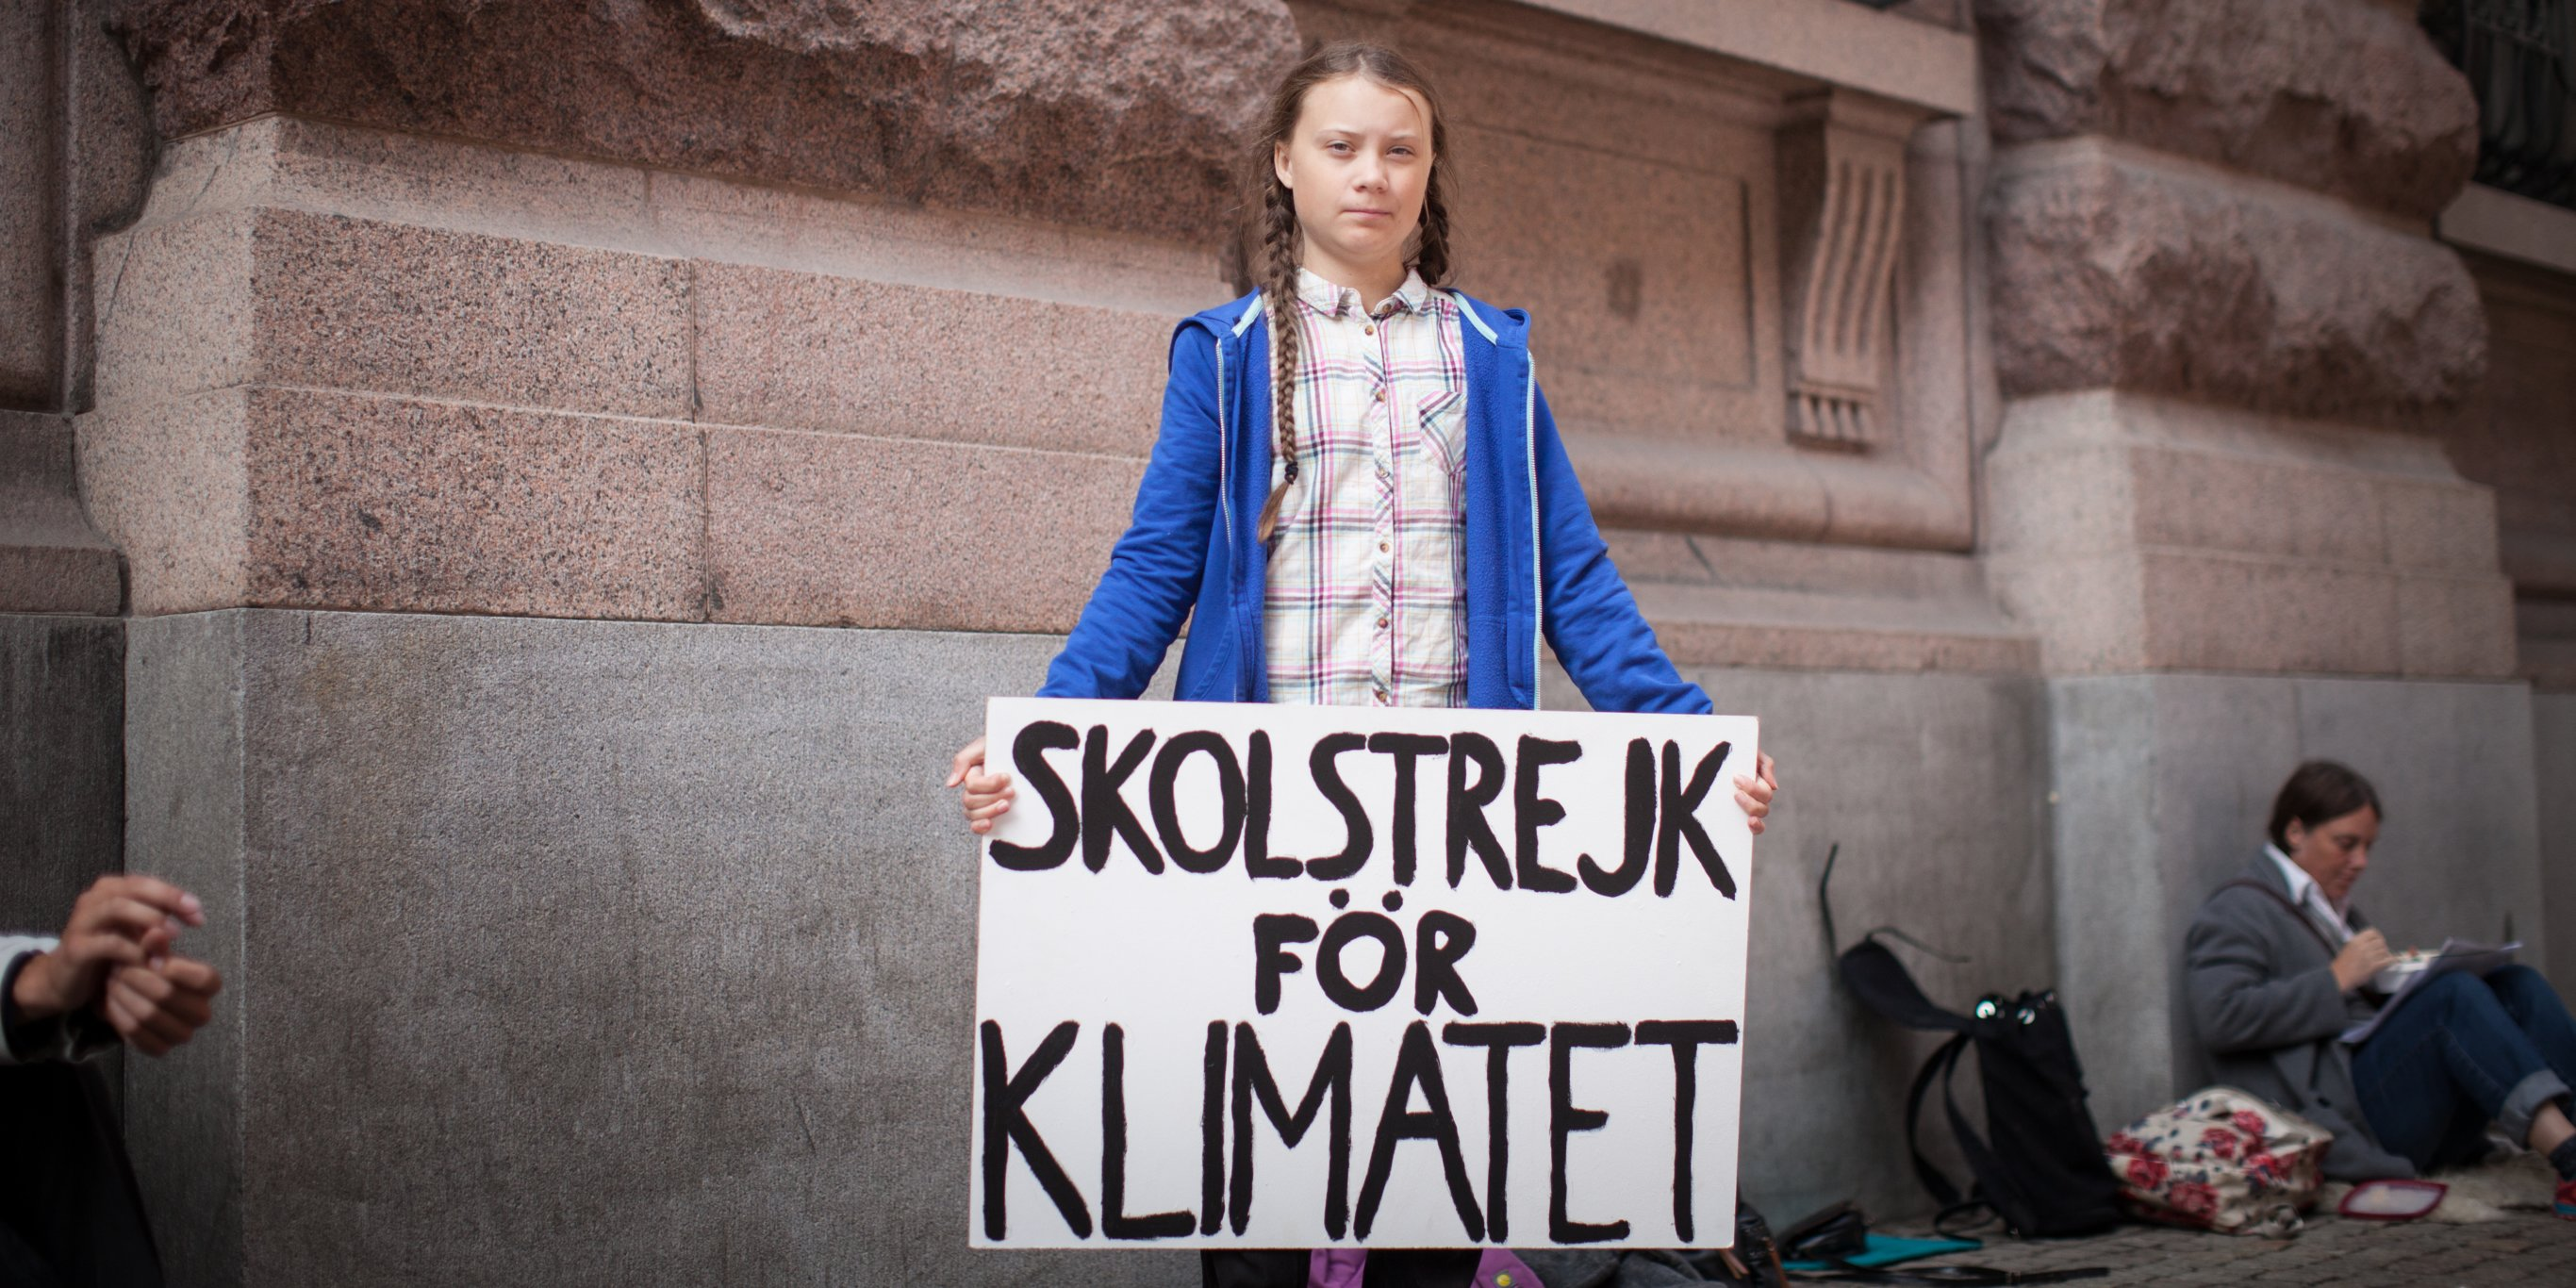 How 16-year-old Greta Thunberg became the face of climate-change activism